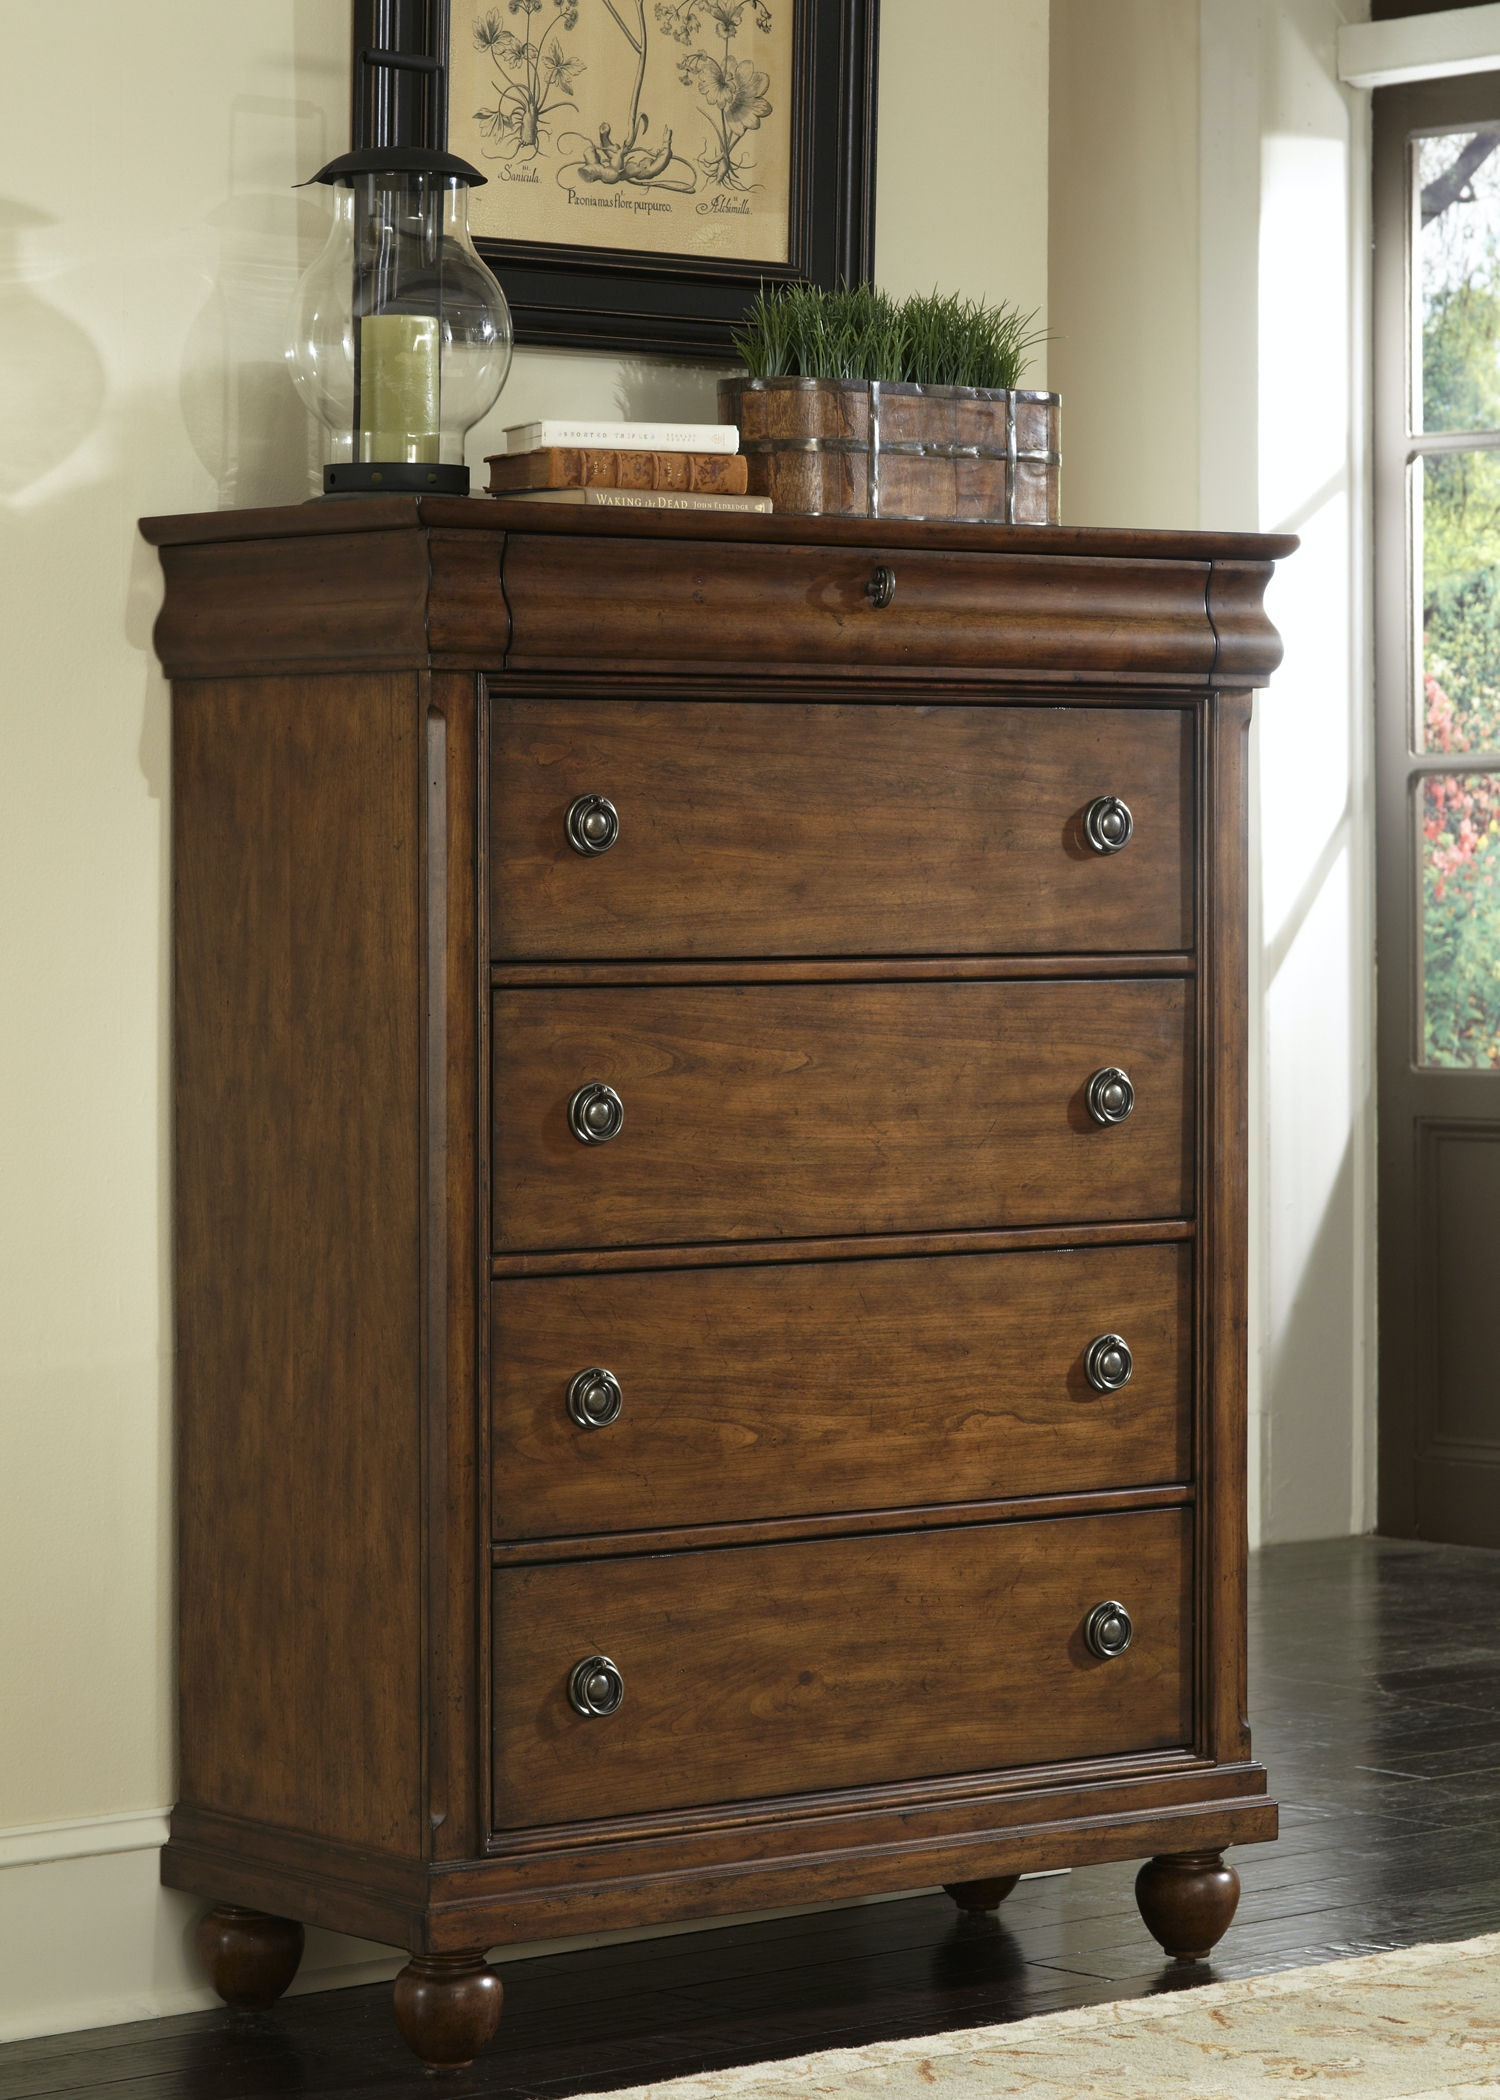 Liberty Furniture Bedroom 5 Drawer Chest 589 BR41 At Smith Village Home  Furniture